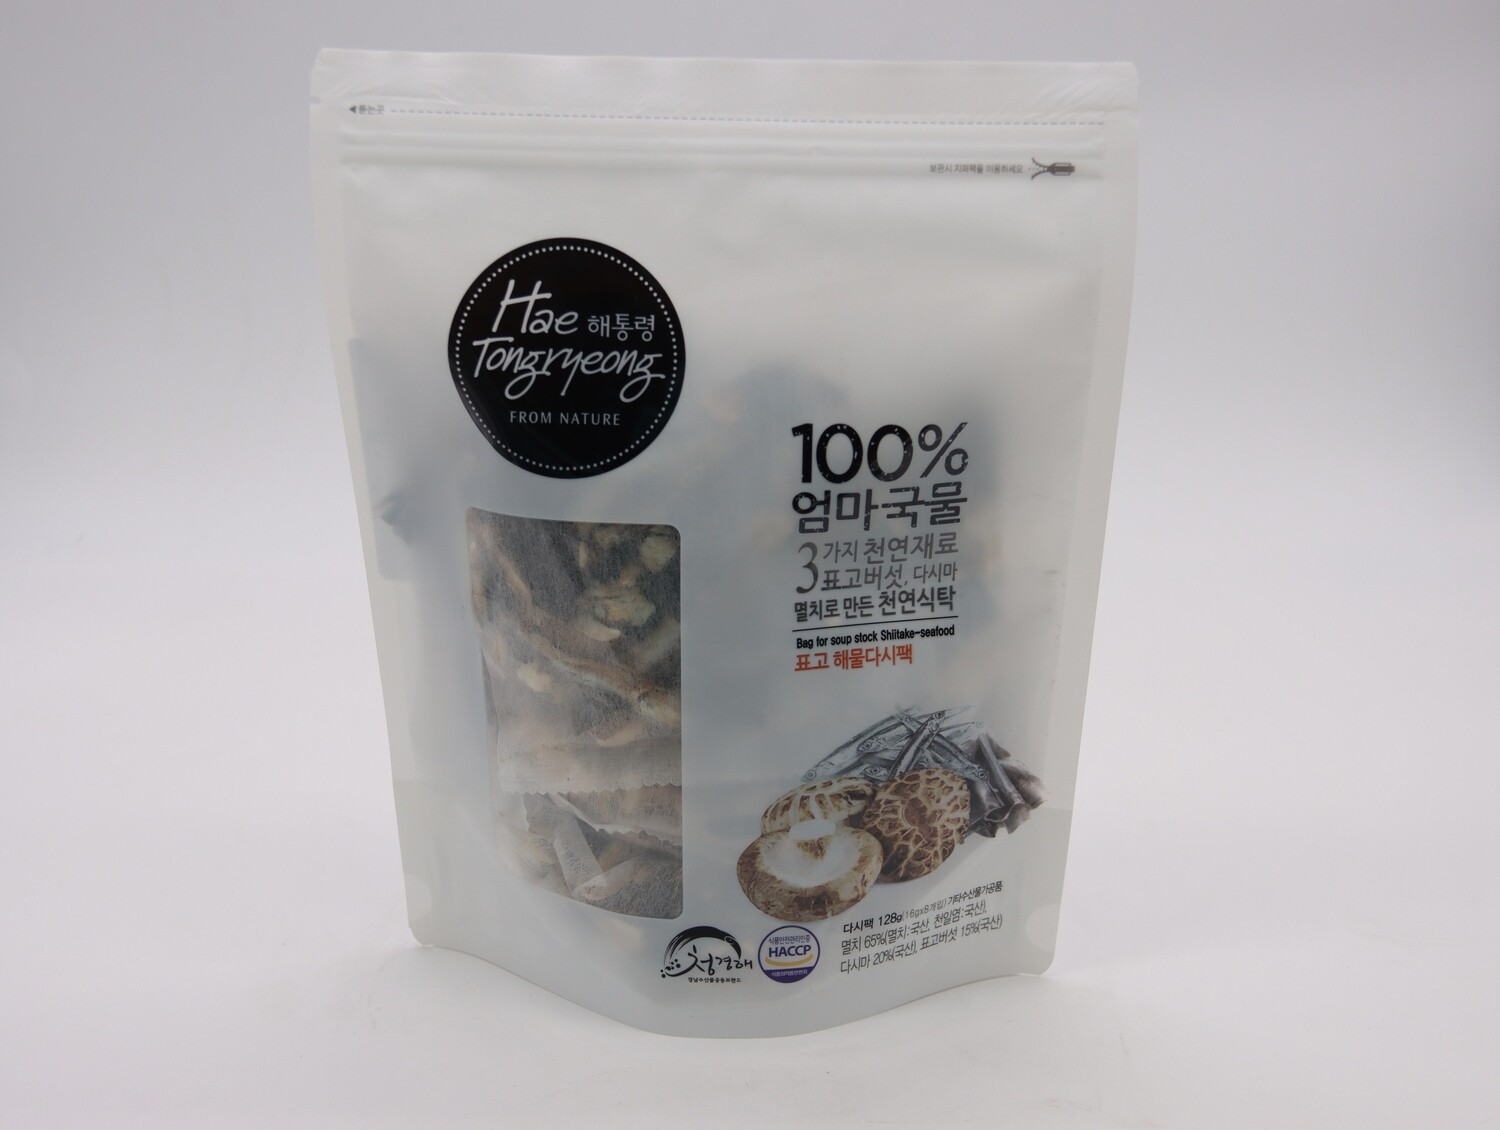 Pan Royal Korean Ready Soup Bag - Shiitake Seafood